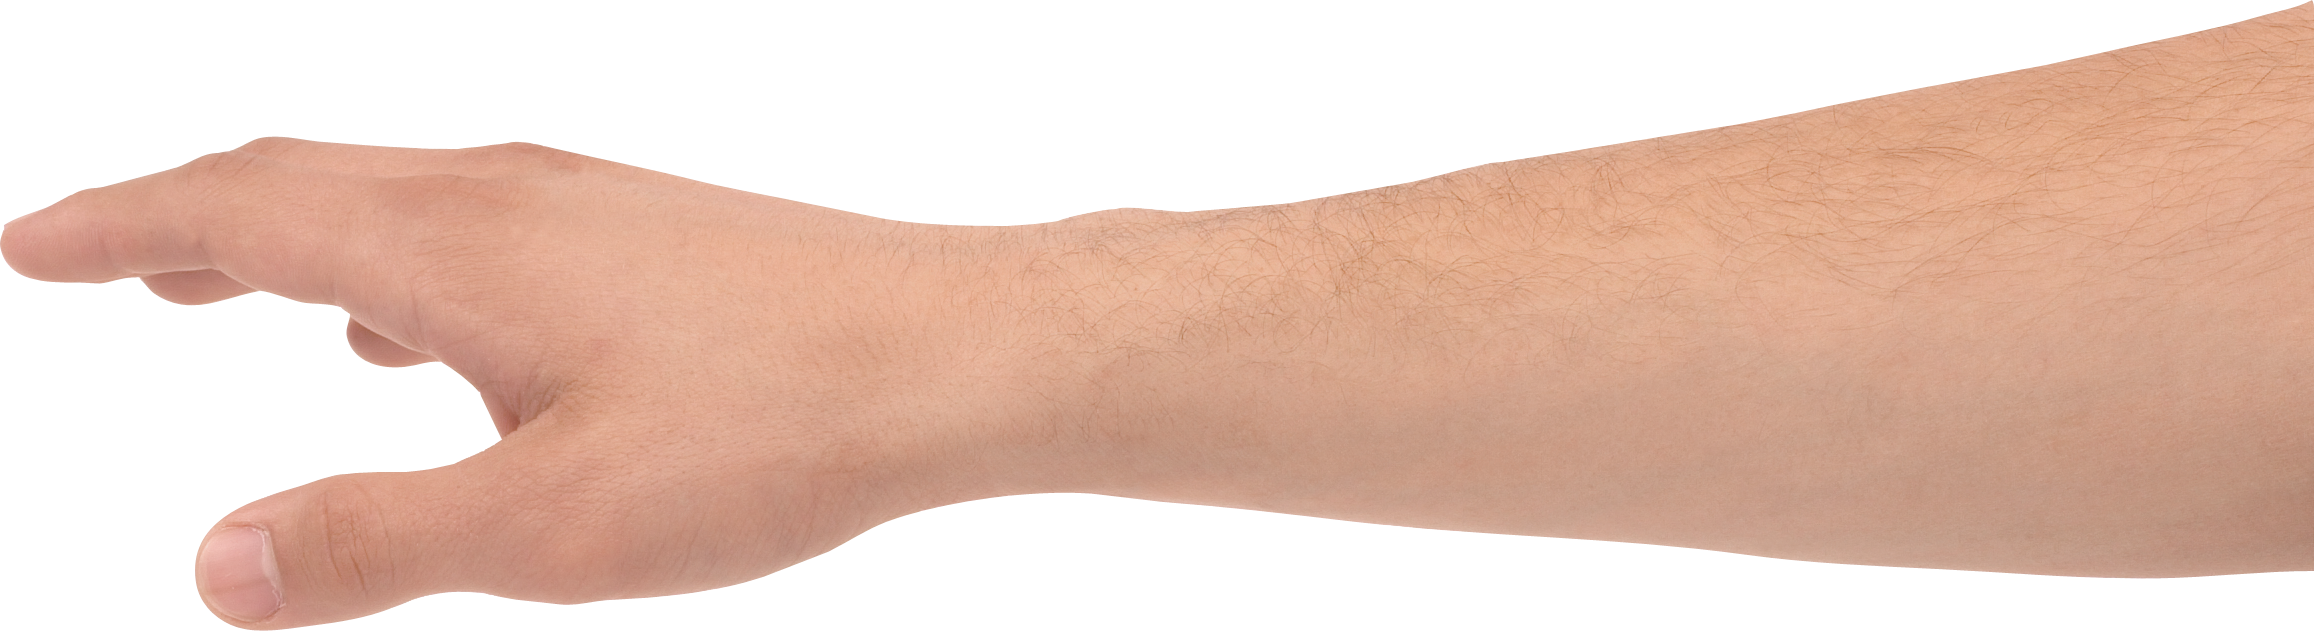 Png image purepng free. Hands clipart forearm